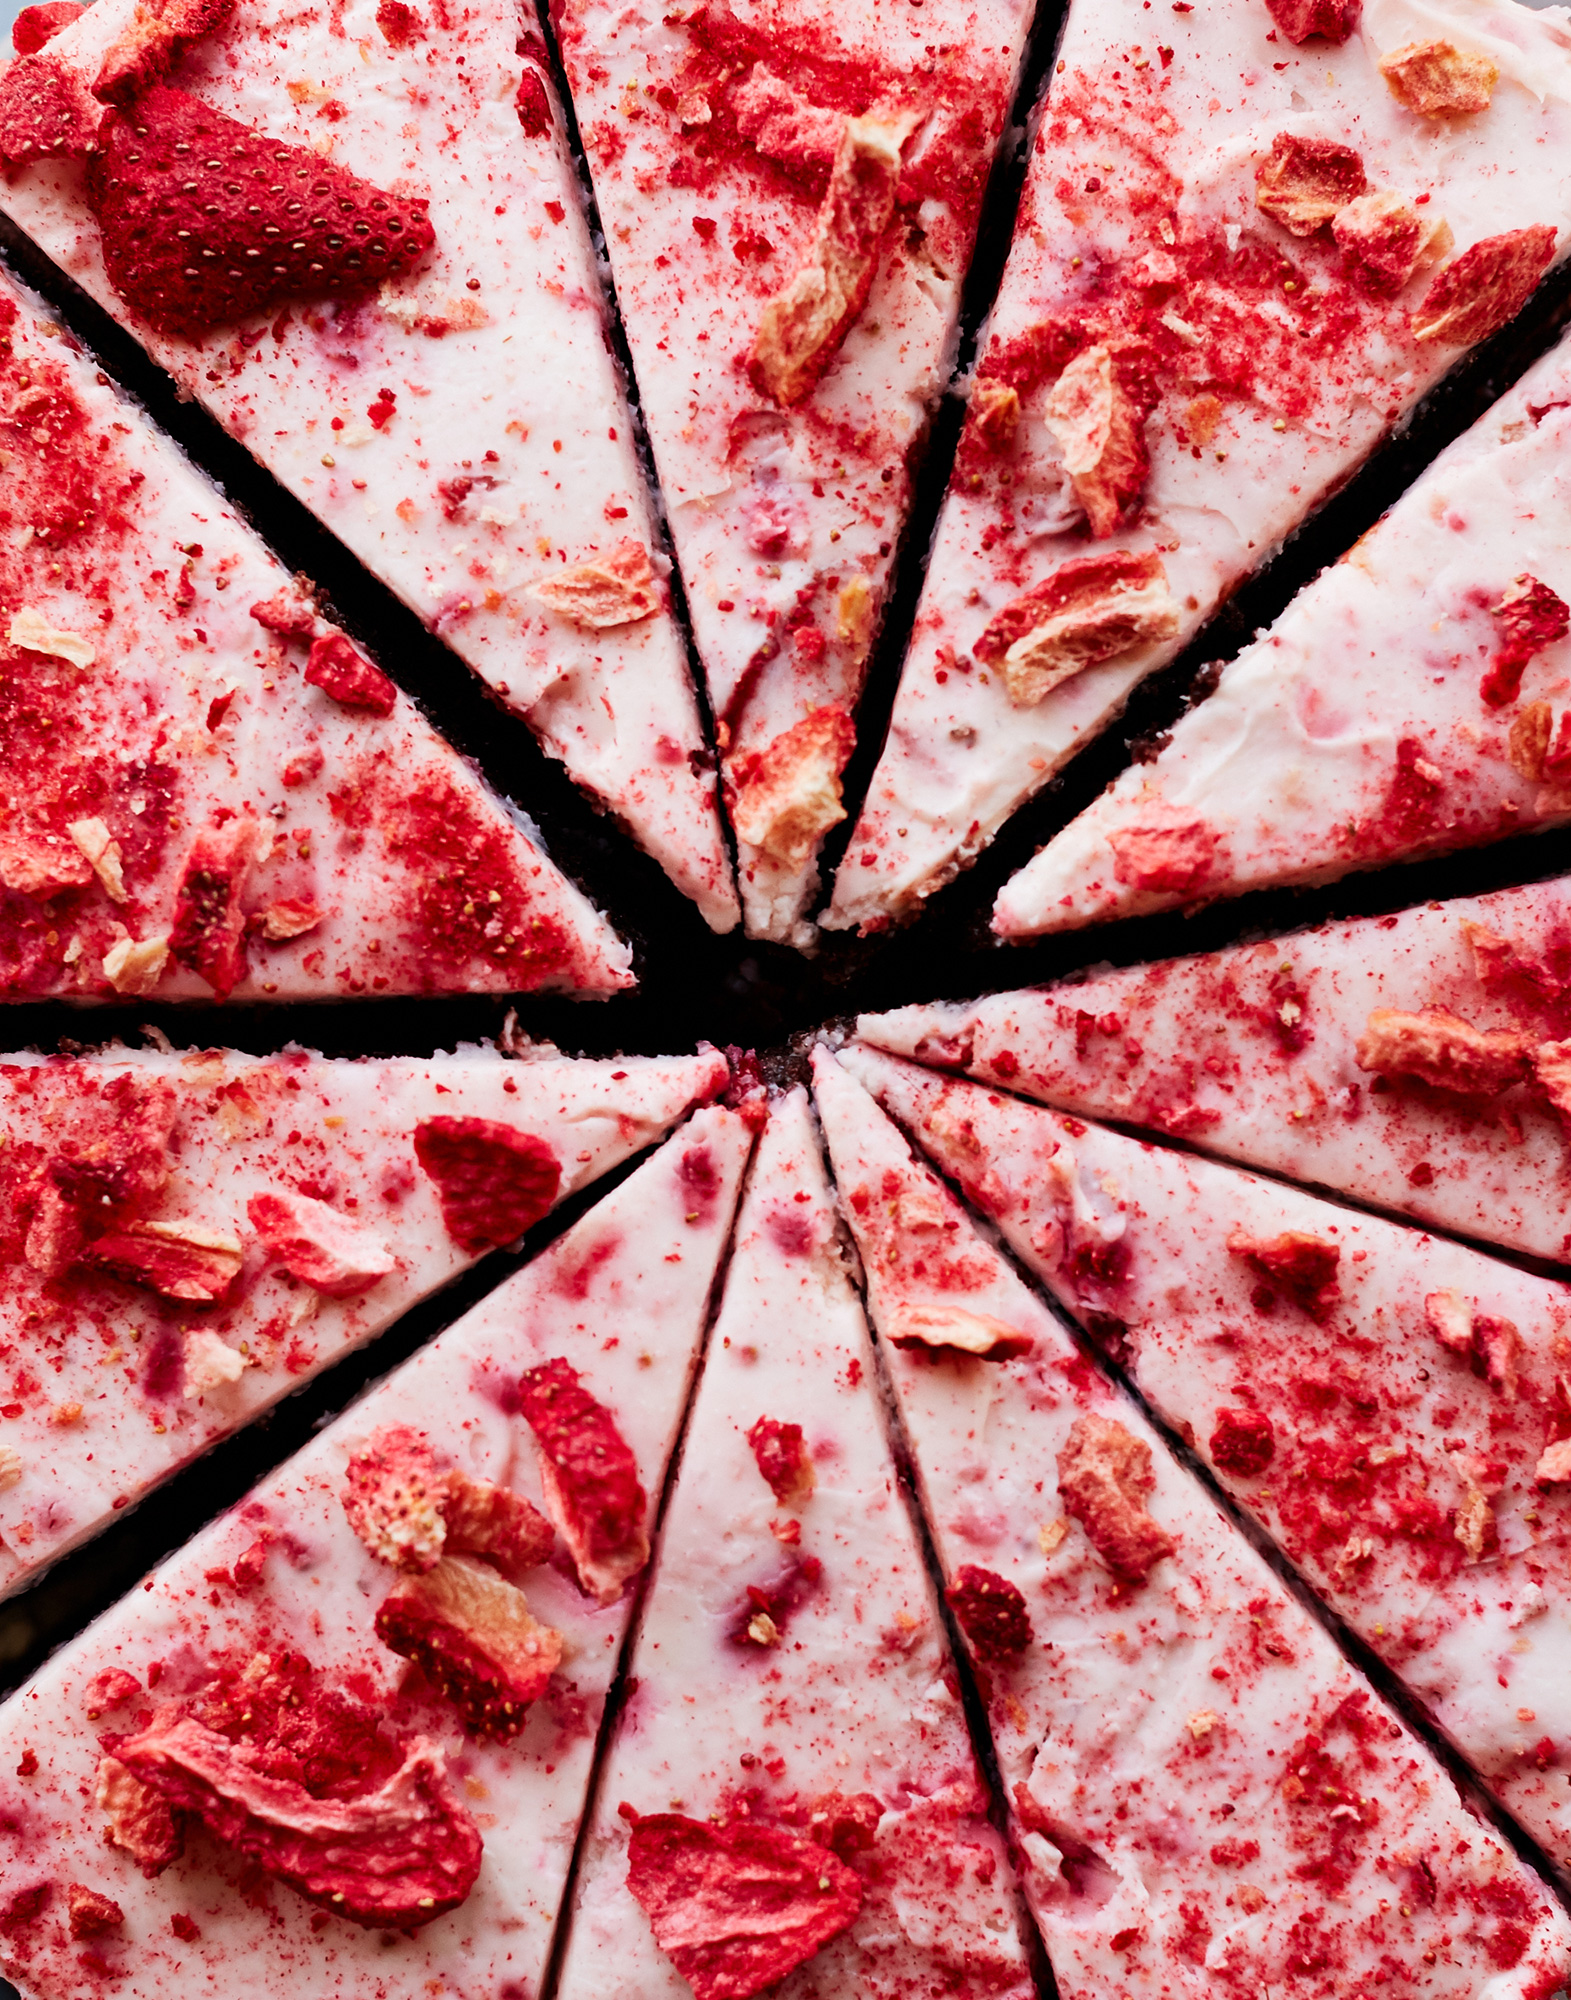 01_Red_Velvety_Strawberry_Cake_J_Miller_0213